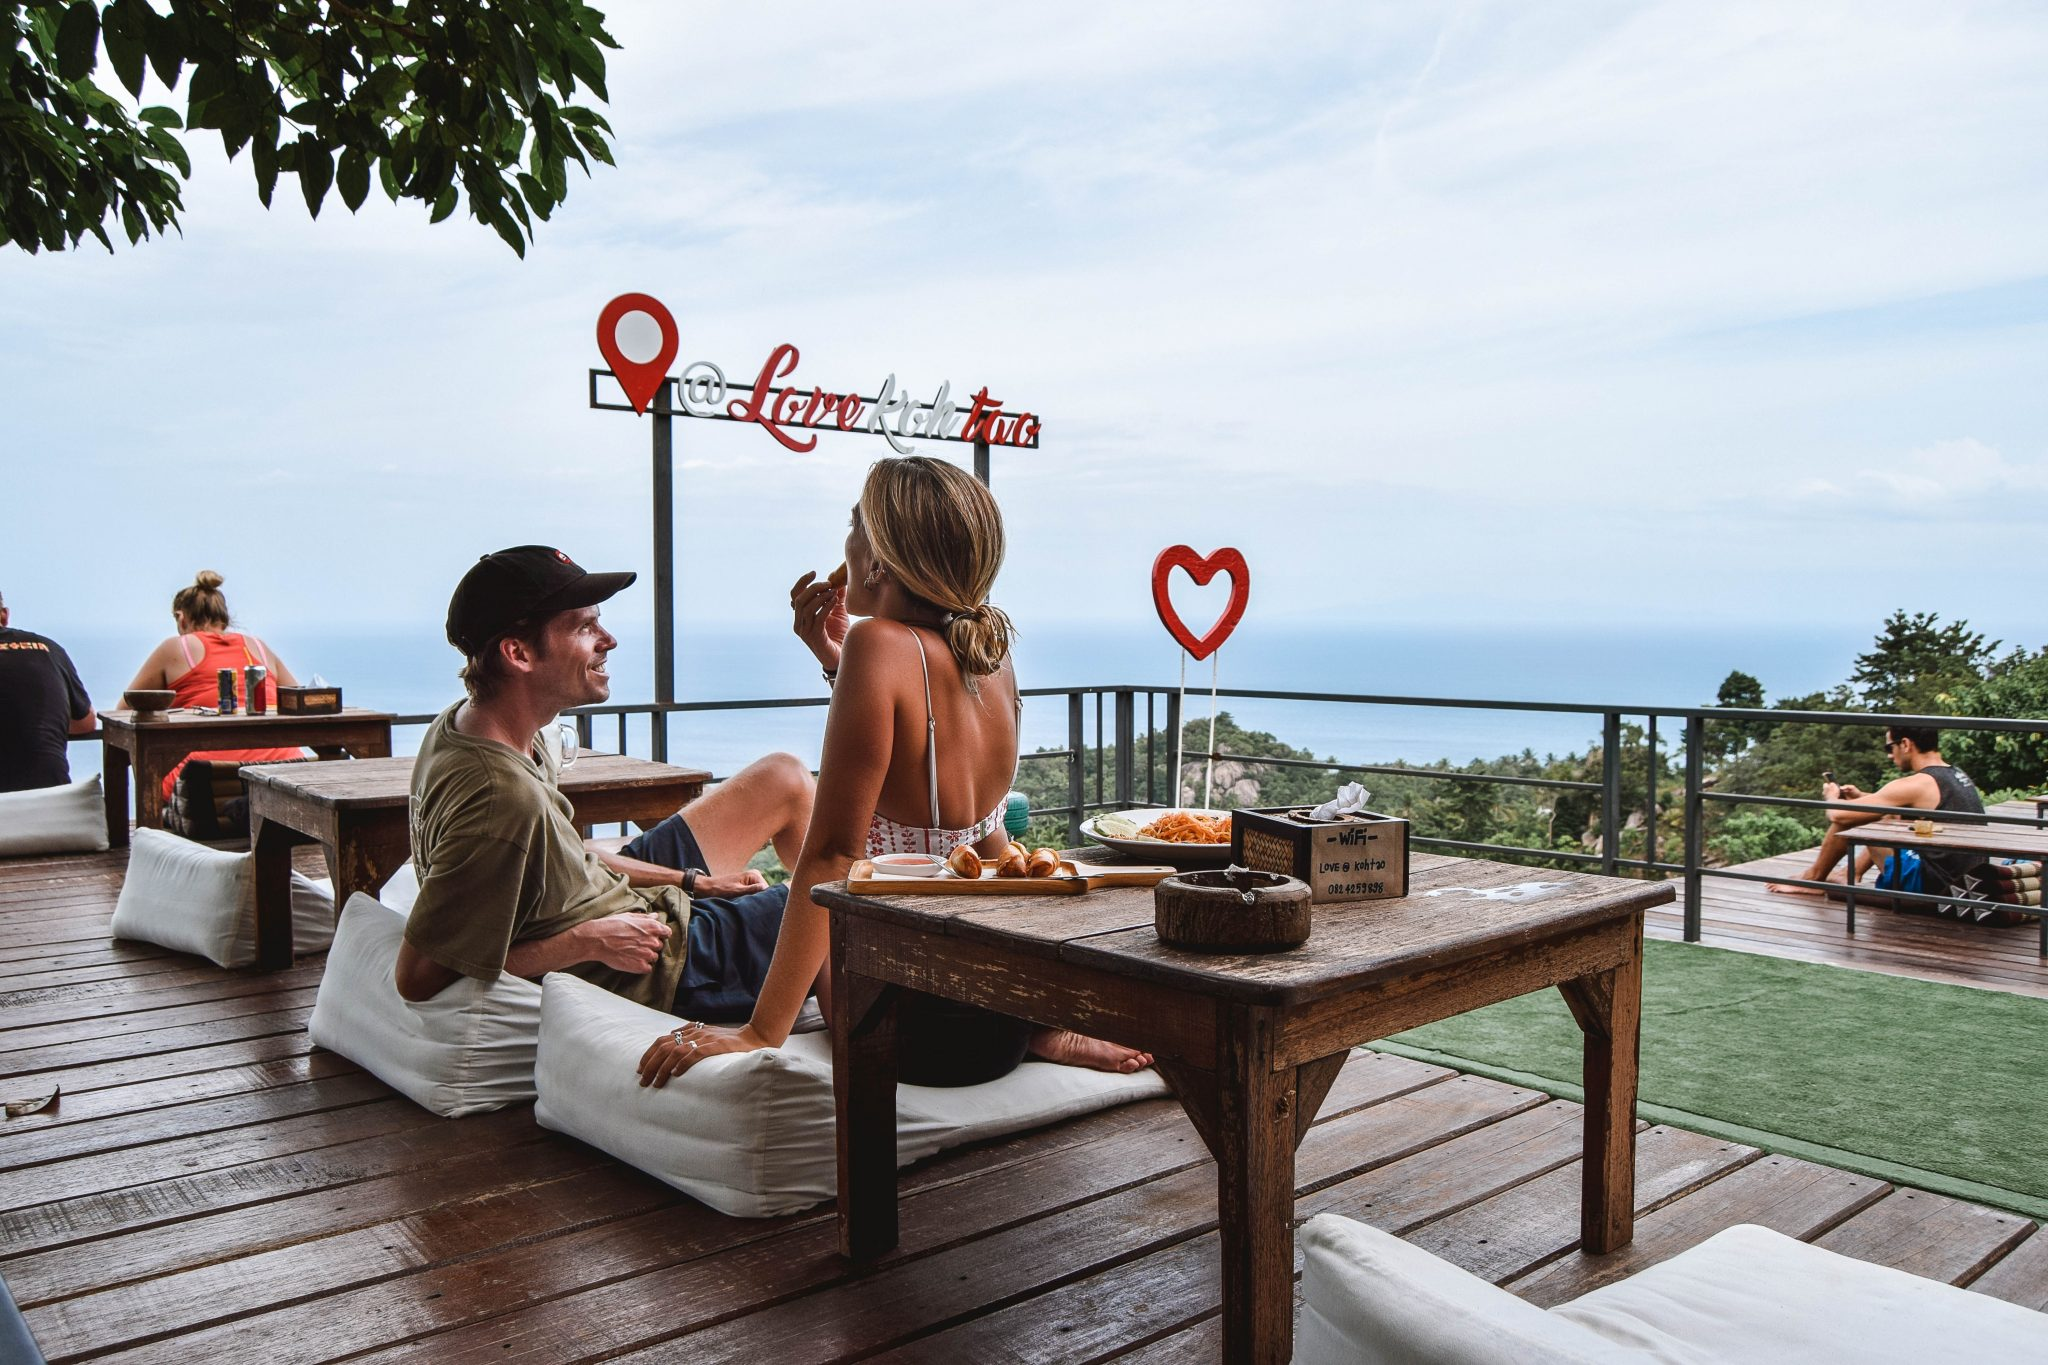 Wanderers & Warriors - Charlie & Lauren UK Travel Couple - Love Koh Tao Viewpoint Koh Tao Viewpoints - Love Koh Tao Sign -things to do on koh tao